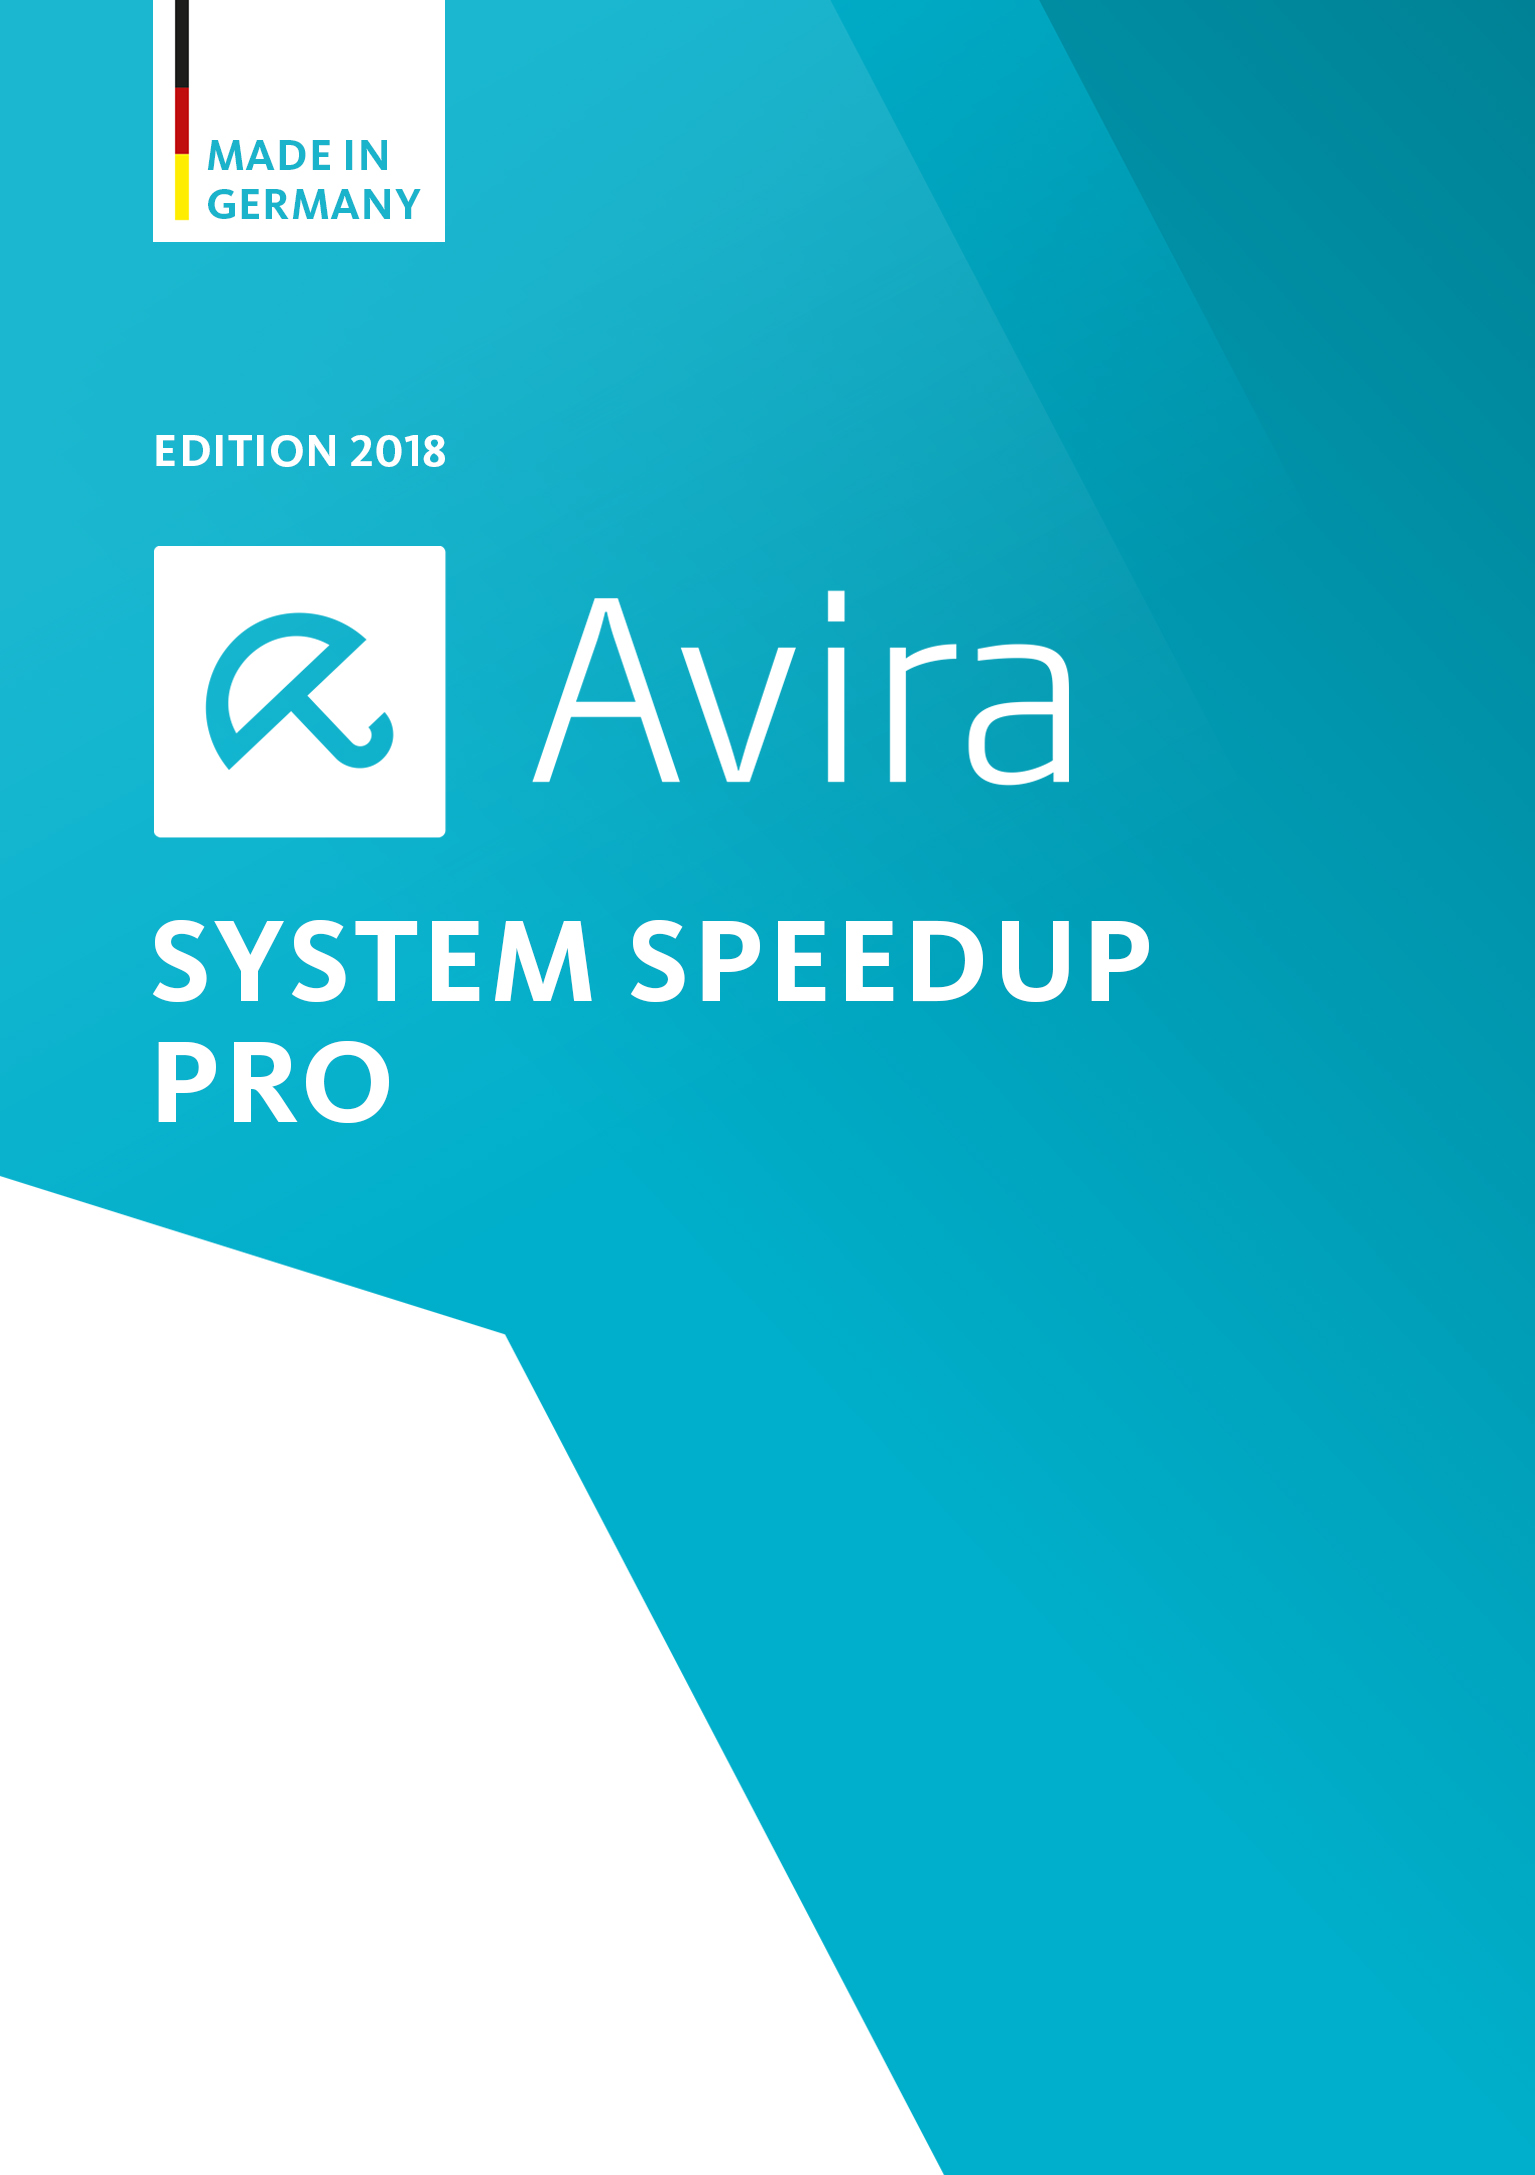 Avira System Speedup Pro Software Edition 2018 / PC Tuning Software (2-Jahres-Abonnement) für 1 Windows PC / Download für Windows-Betriebssysteme (7, 8, 8.1, 10) [Online Code]